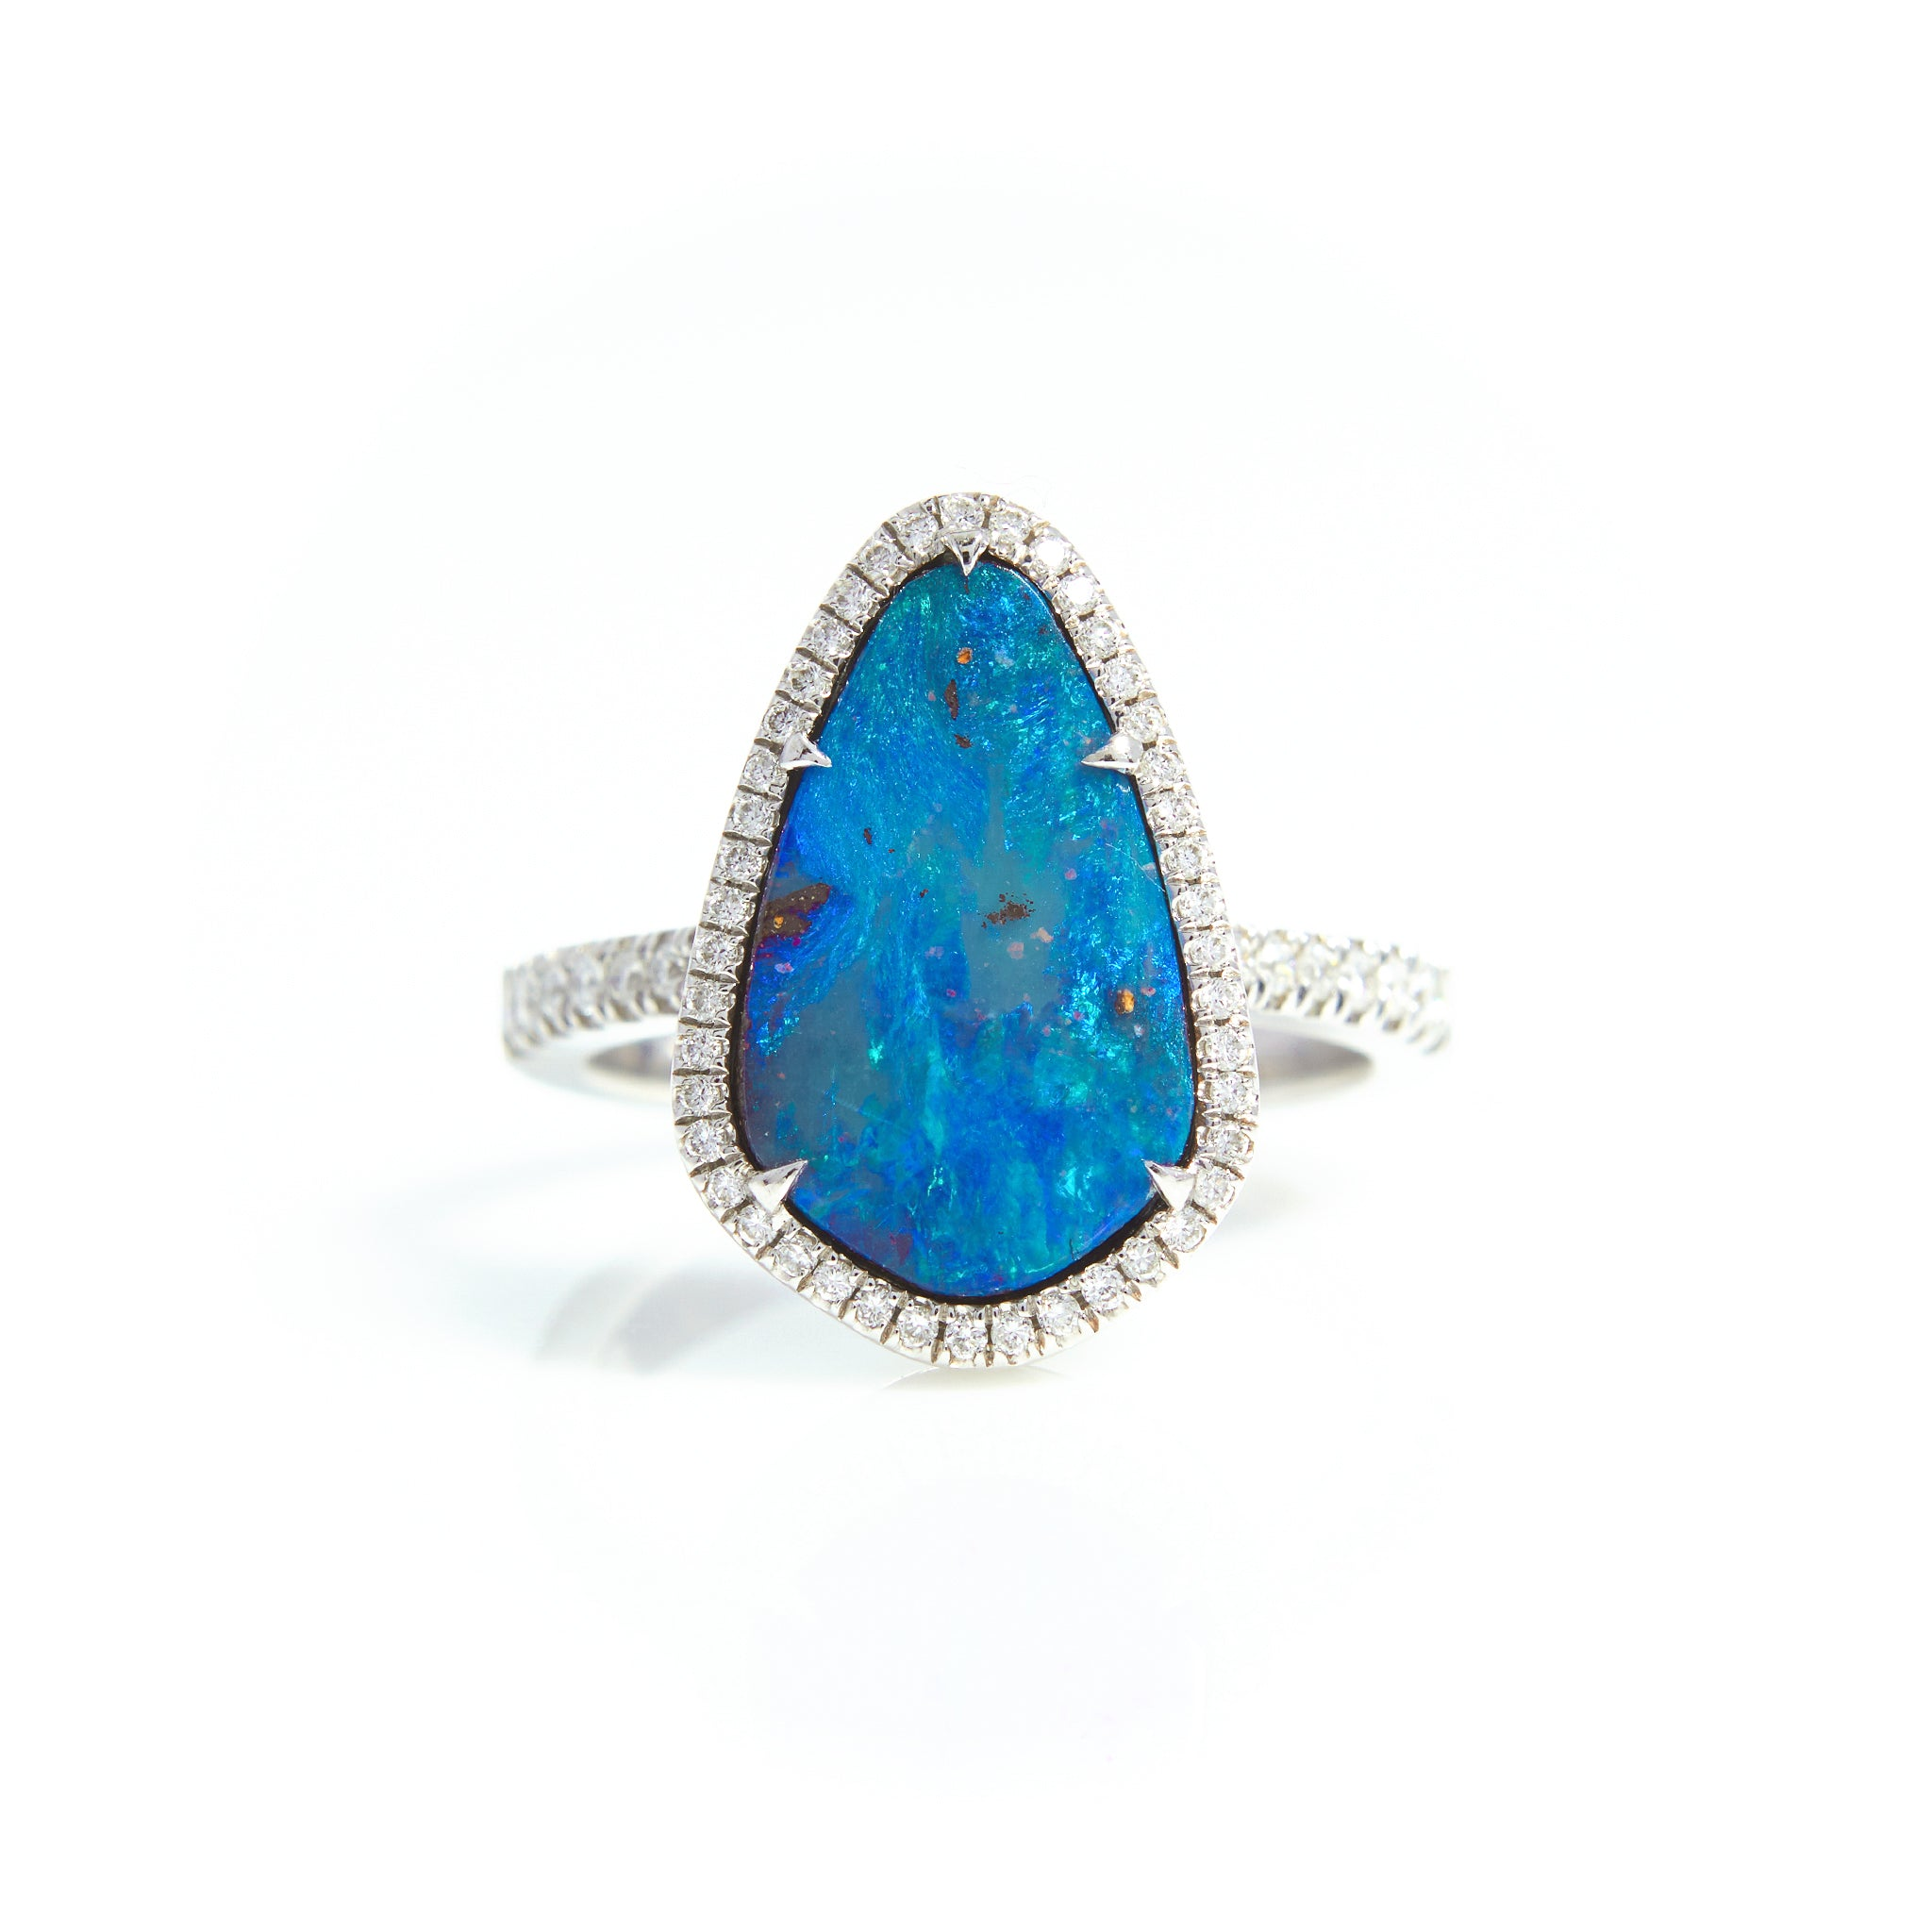 S. Kashi Boulder Opal and Diamond Ring in White Gold - Sindur